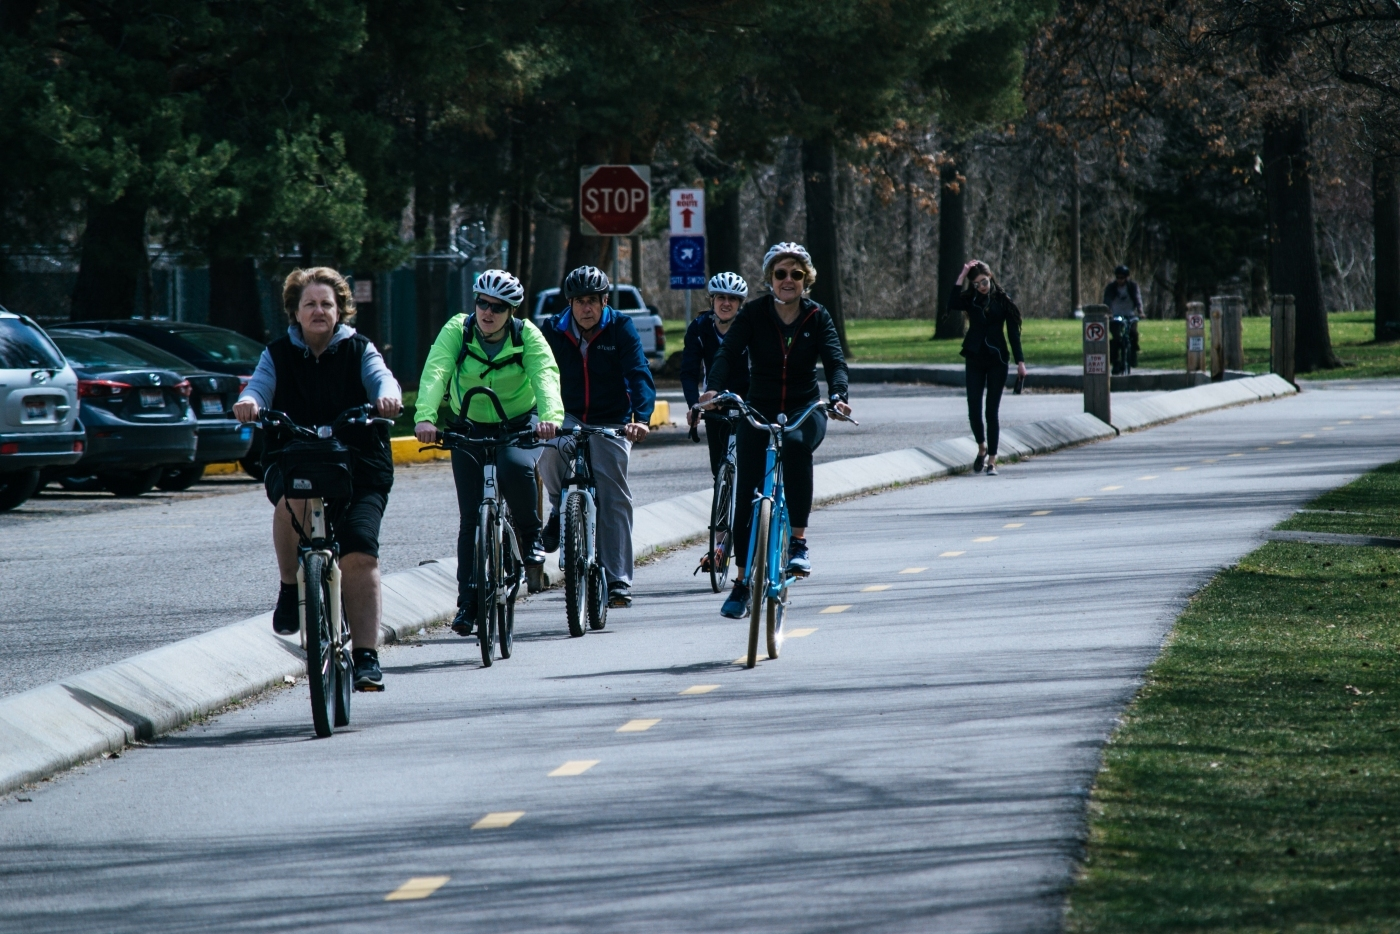 People cycling along a road